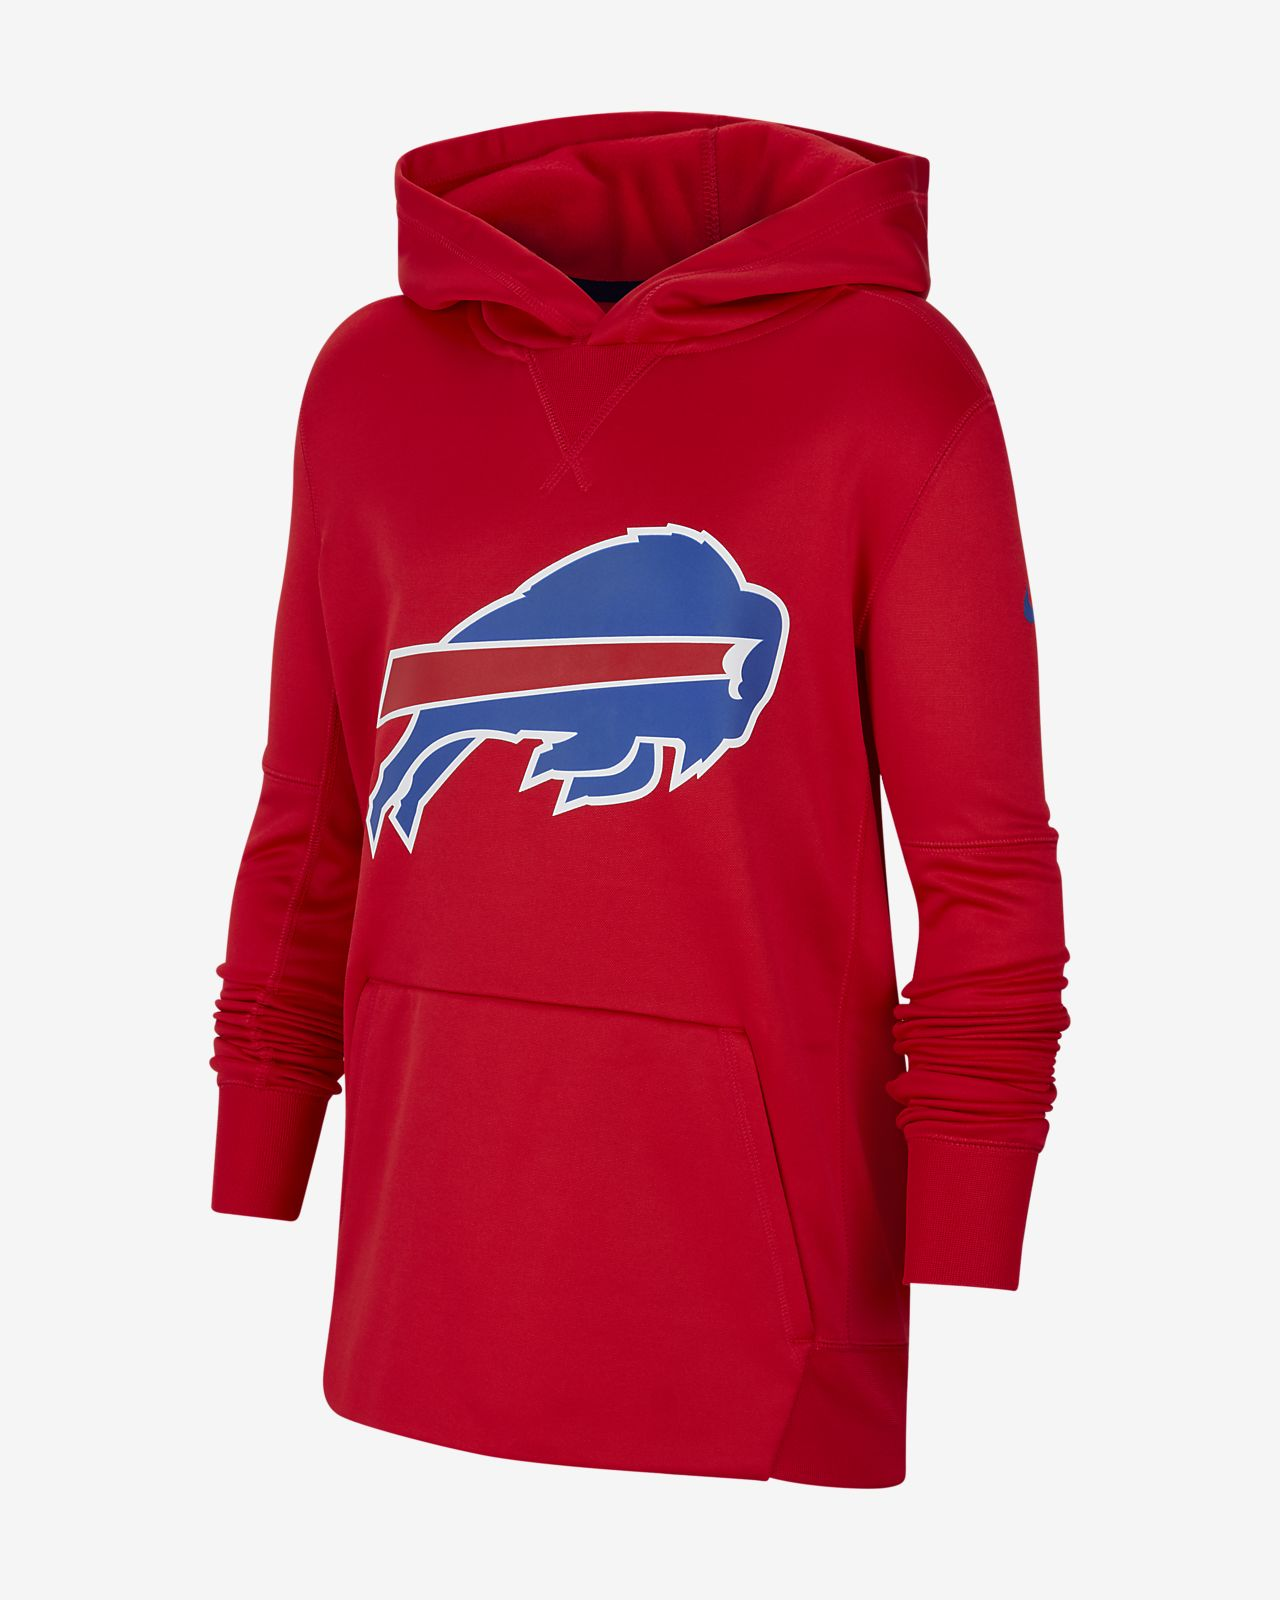 Nike (NFL Bills) Big Kids' Logo Hoodie